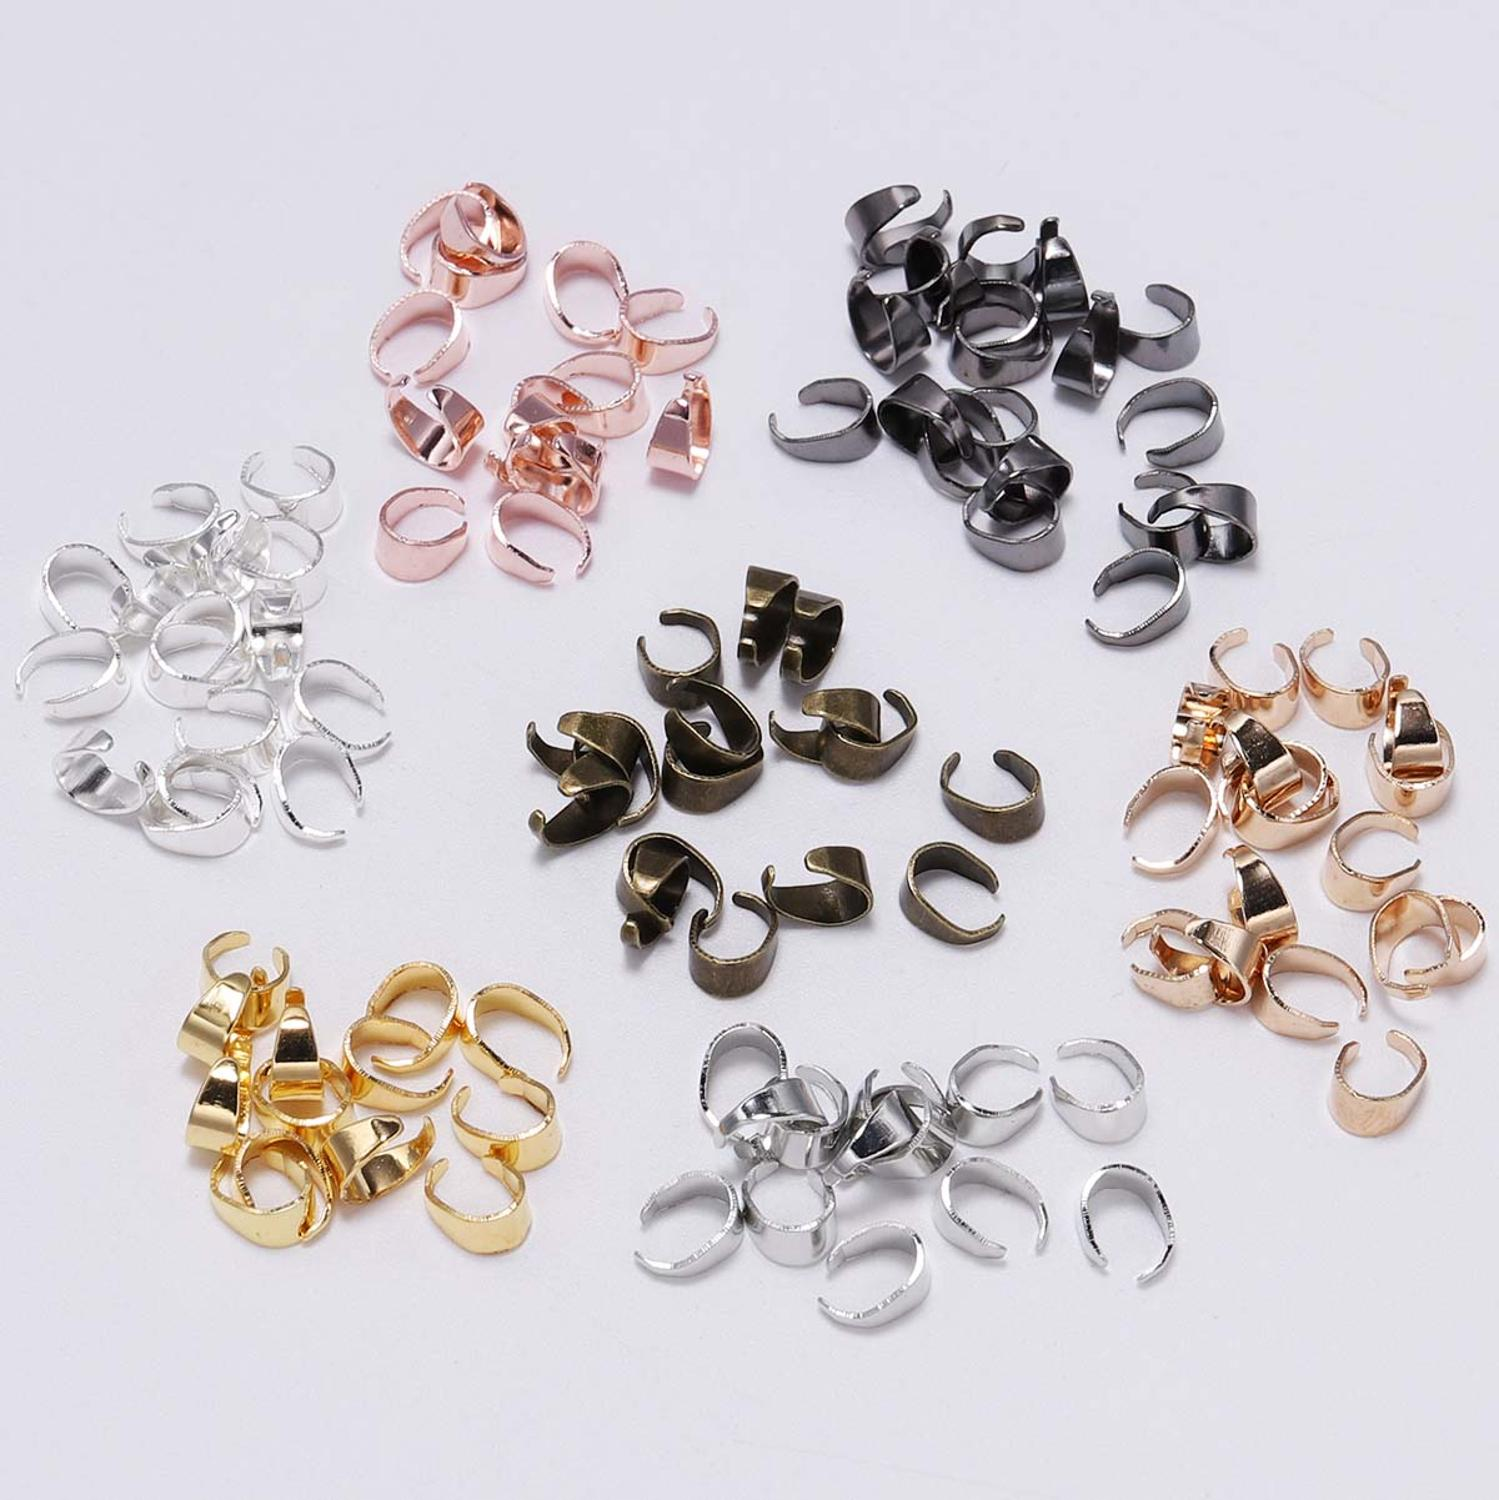 50pcs 7 Color Pendant Clips Pinch Bail Clasps Buckle Charm Connector For Jewelry Making Cameo Tray Craft Necklace Hook Findings